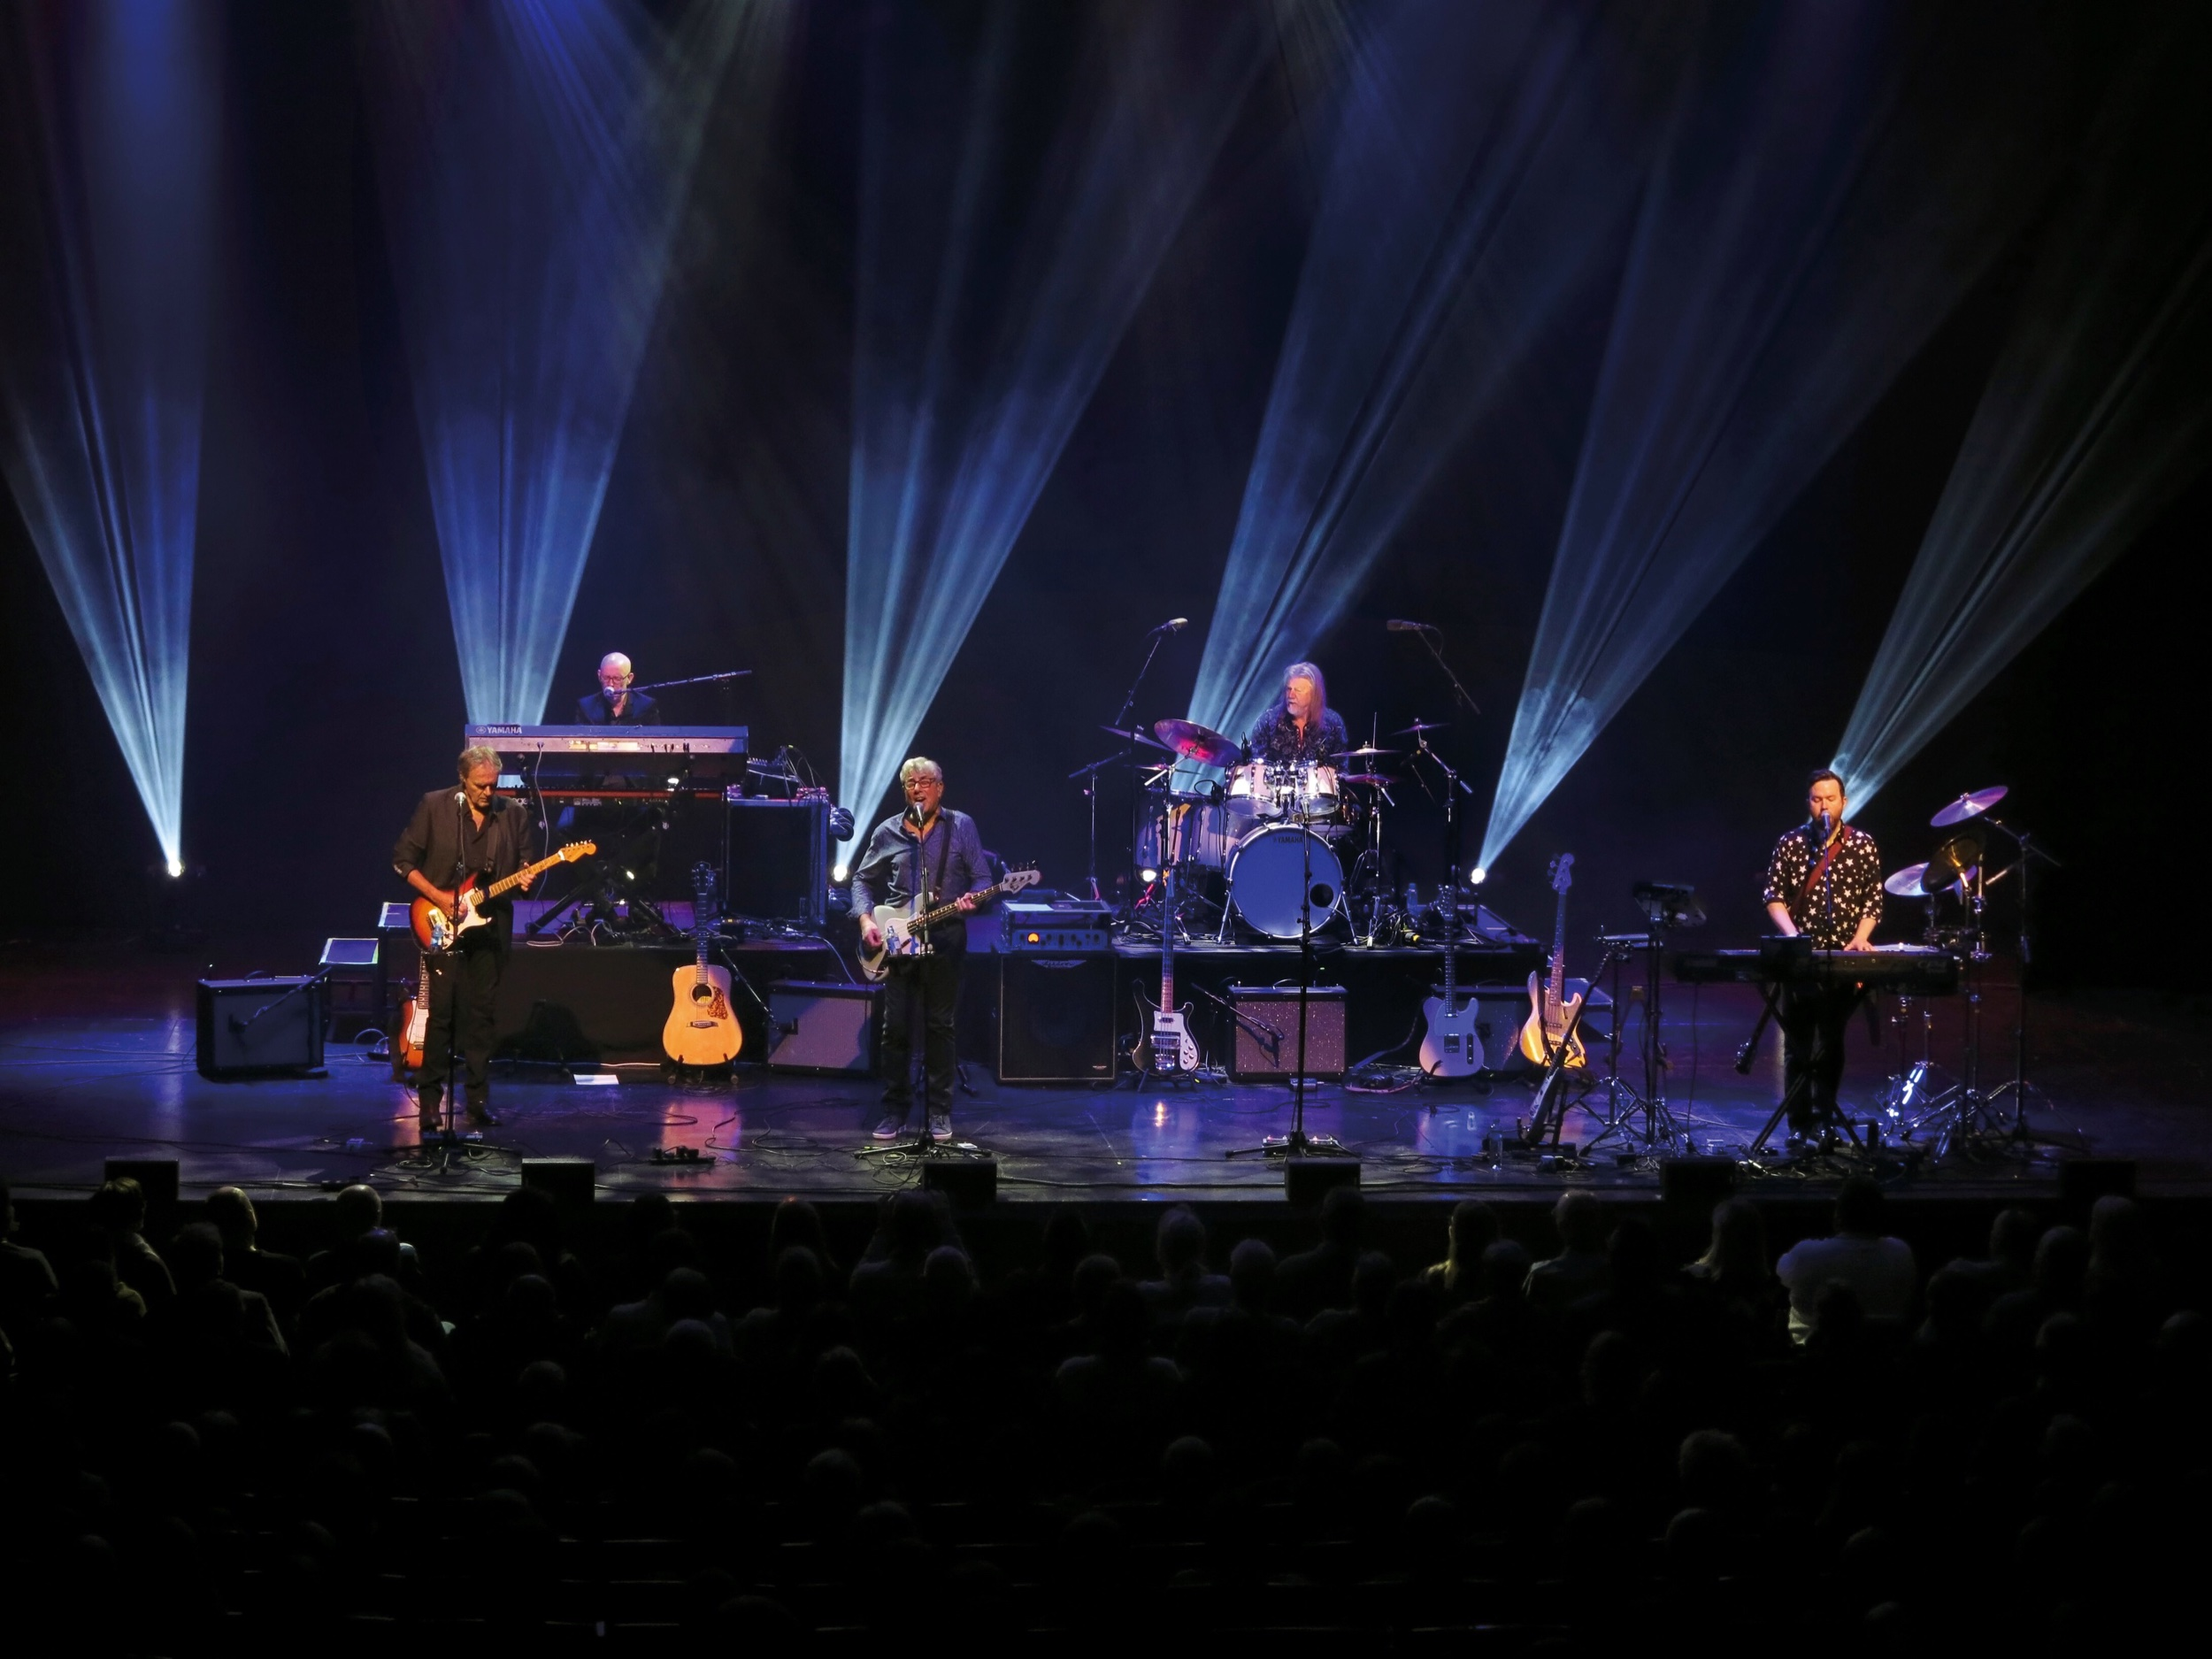 10cc Live - Royal Albert Hall 2019